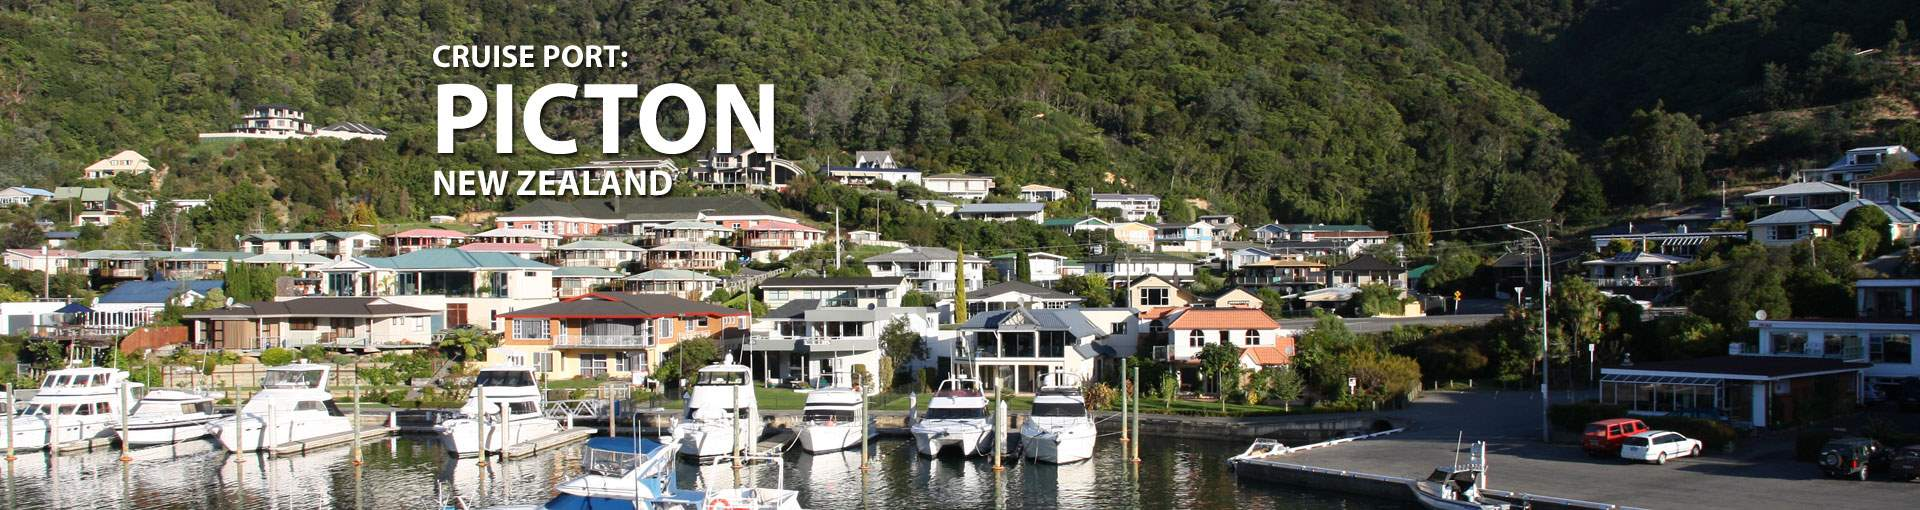 Cruises to Picton, New Zealand